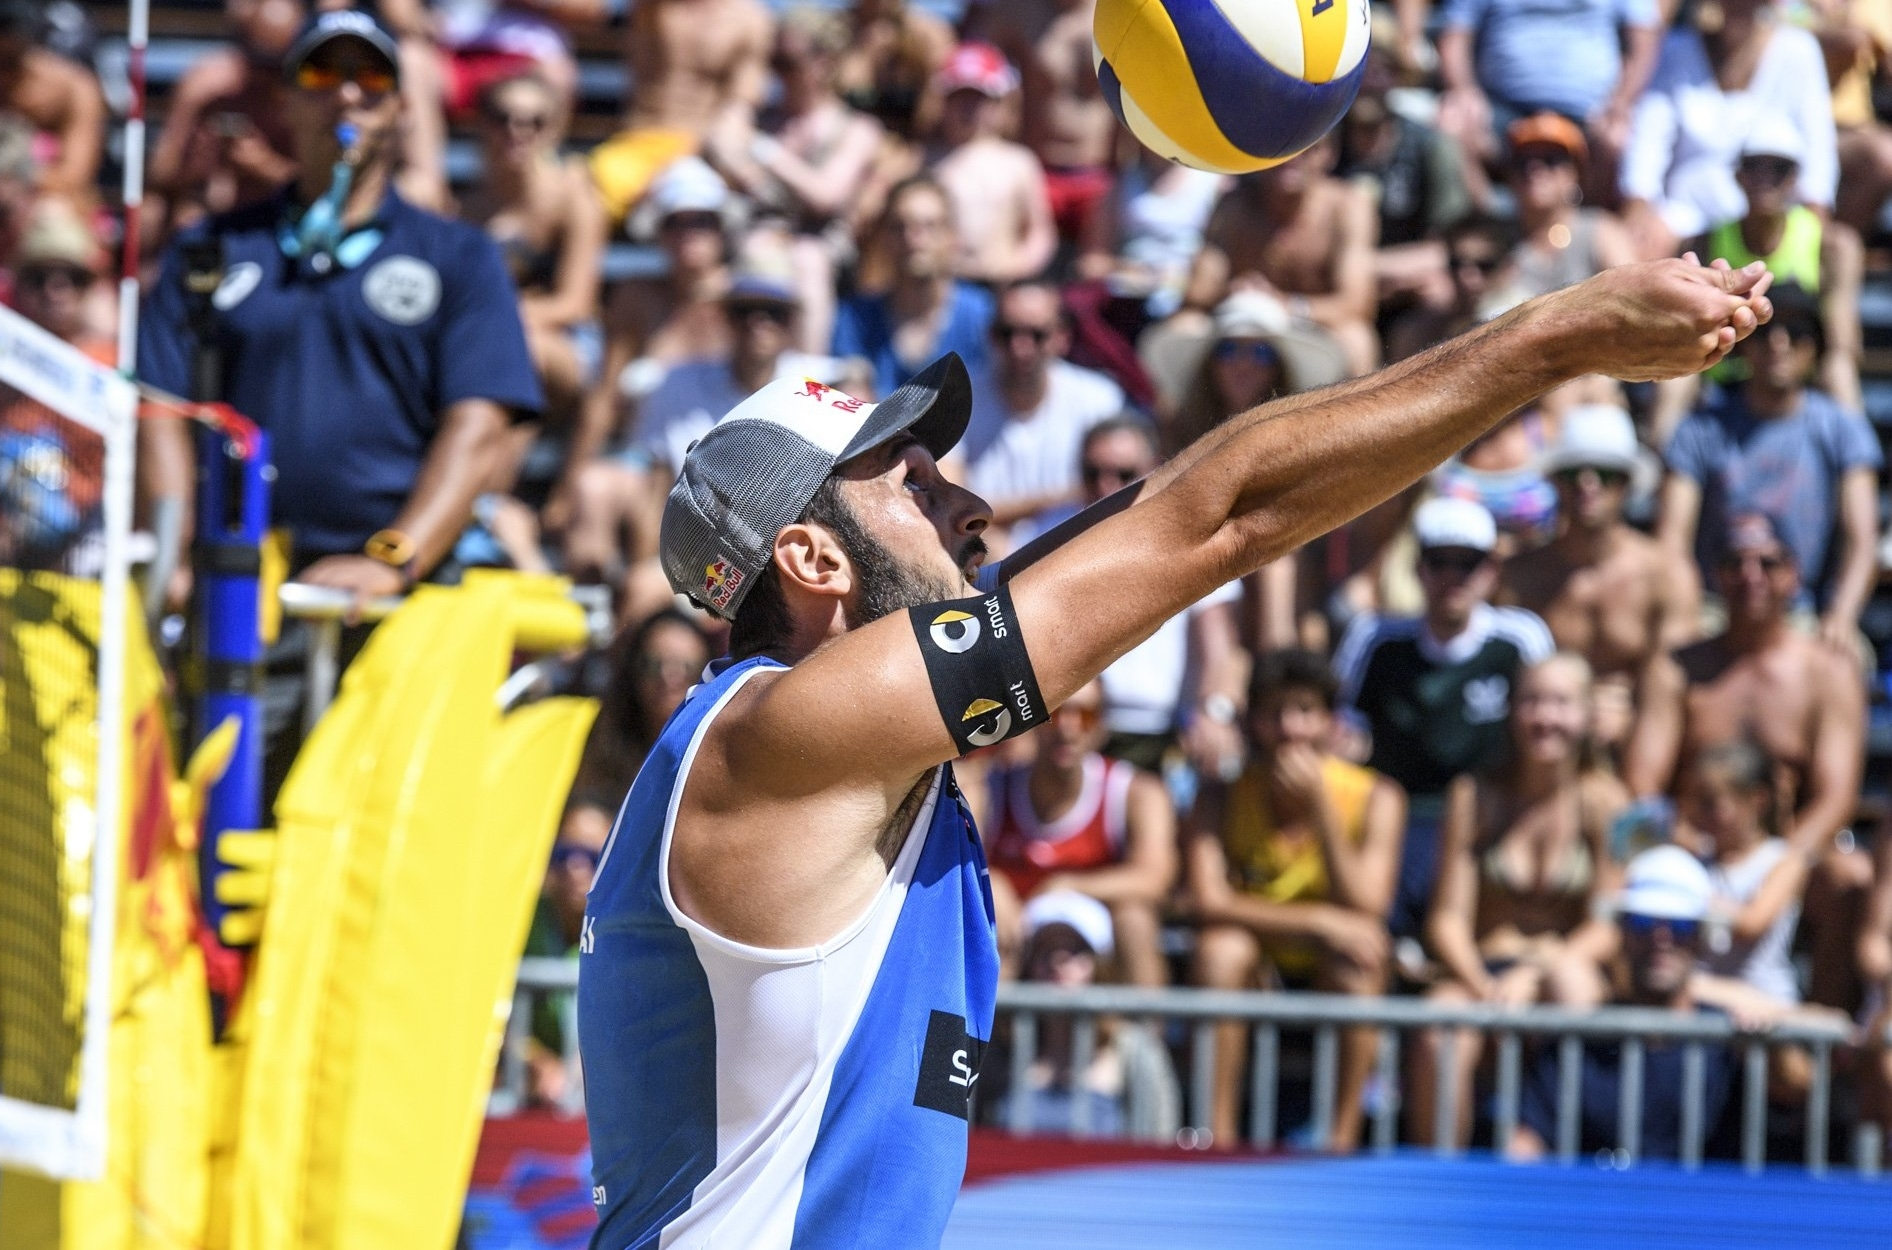 Pablo Nicolai and his partner Daniele Lupo are in the Poreč Major final